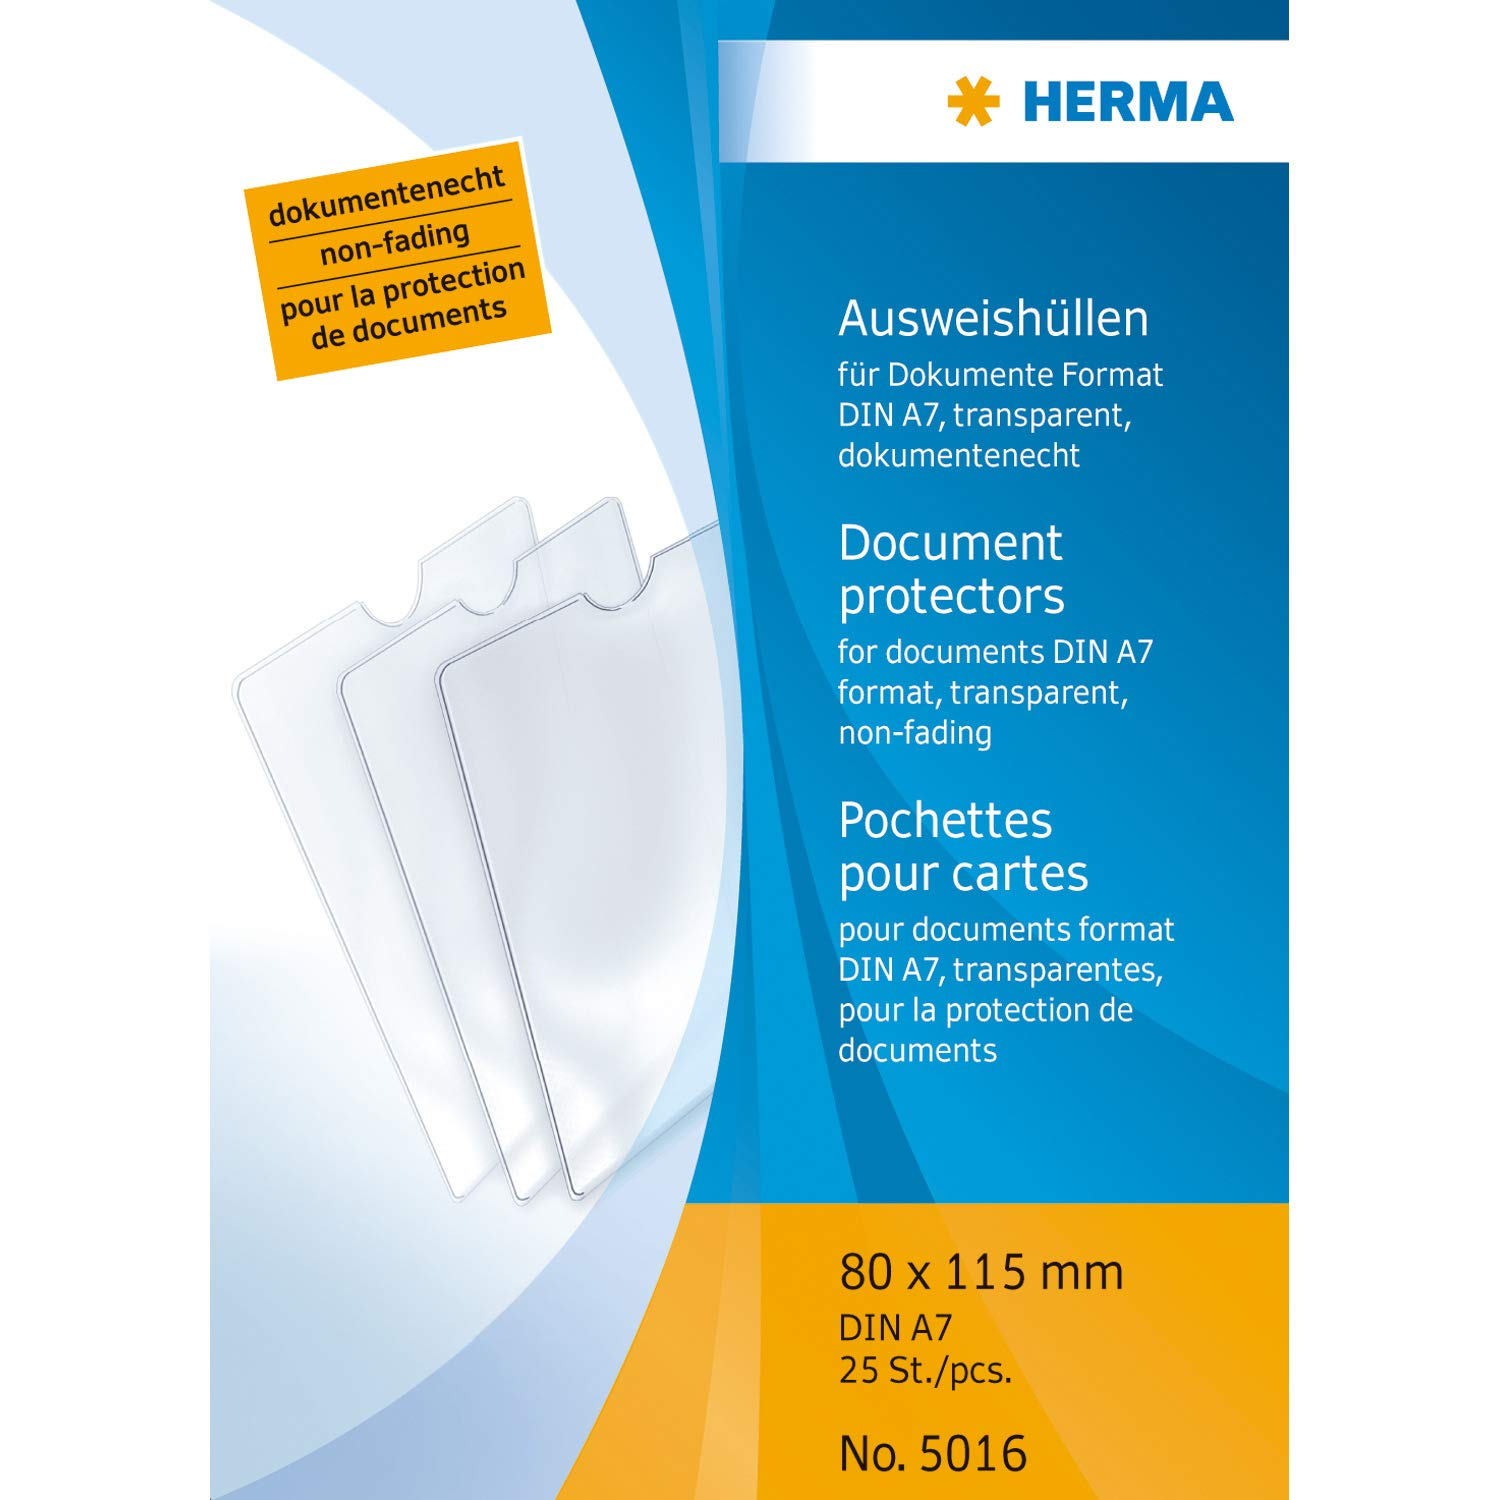 HERMA 5016 Protective ID Card Holder 80 x 115 mm Transparent Suitable for DIN A7 Documents Pack of 25 by HERMA